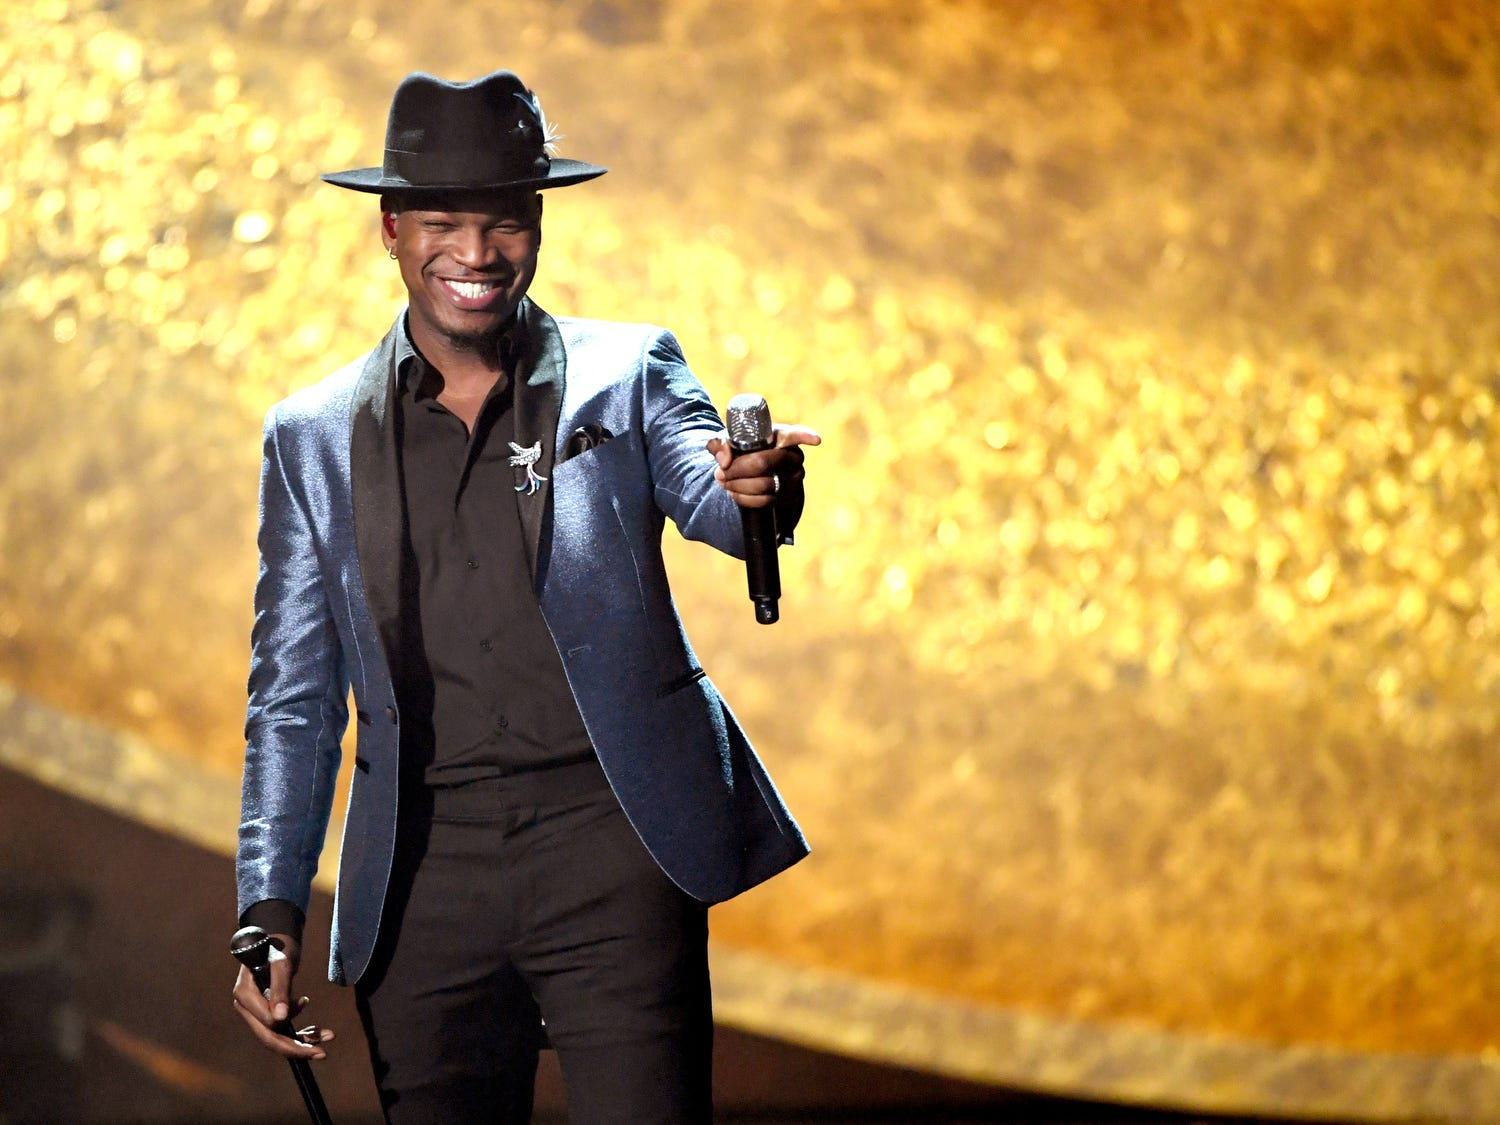 Madison-based music app LÜM locks in Ne-Yo as global ambassador, $3 million investment